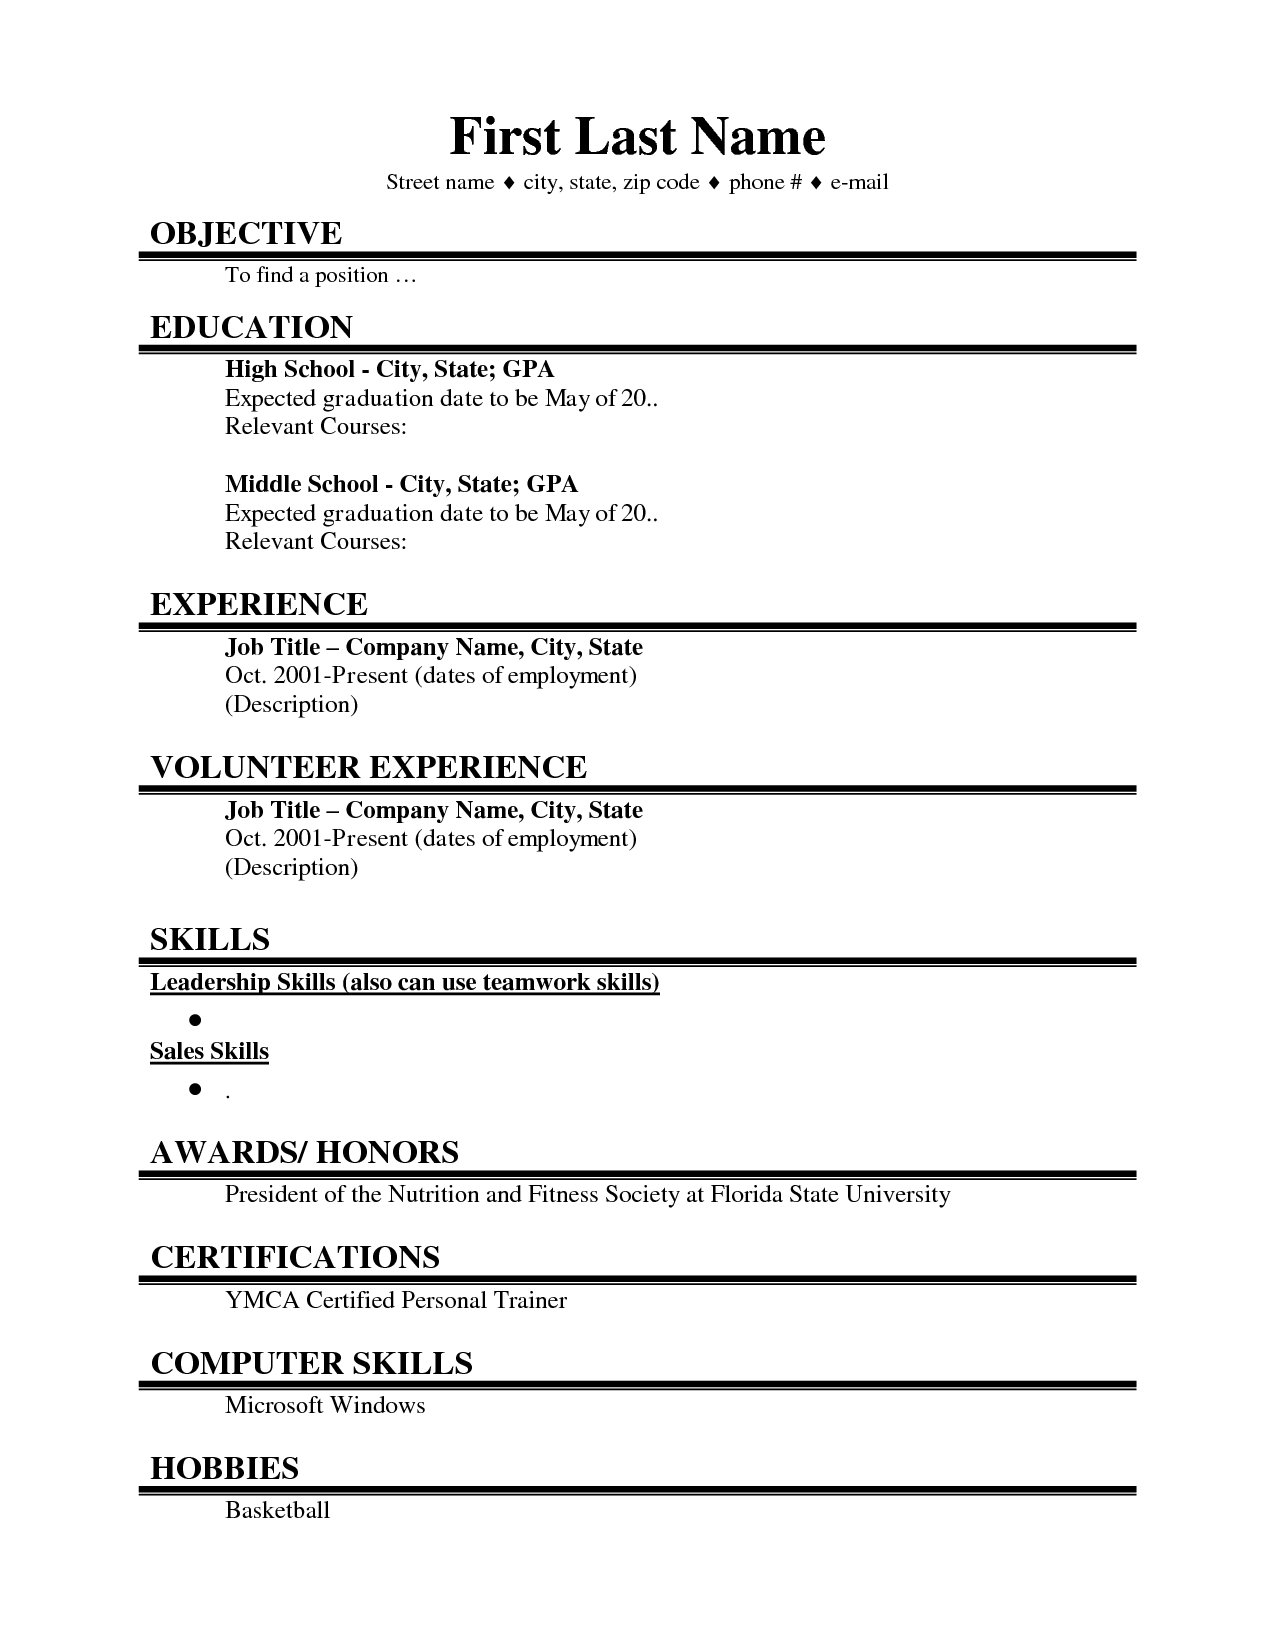 Best Resume Template For High School Student High School Resume Builder For College Resume Template Info High